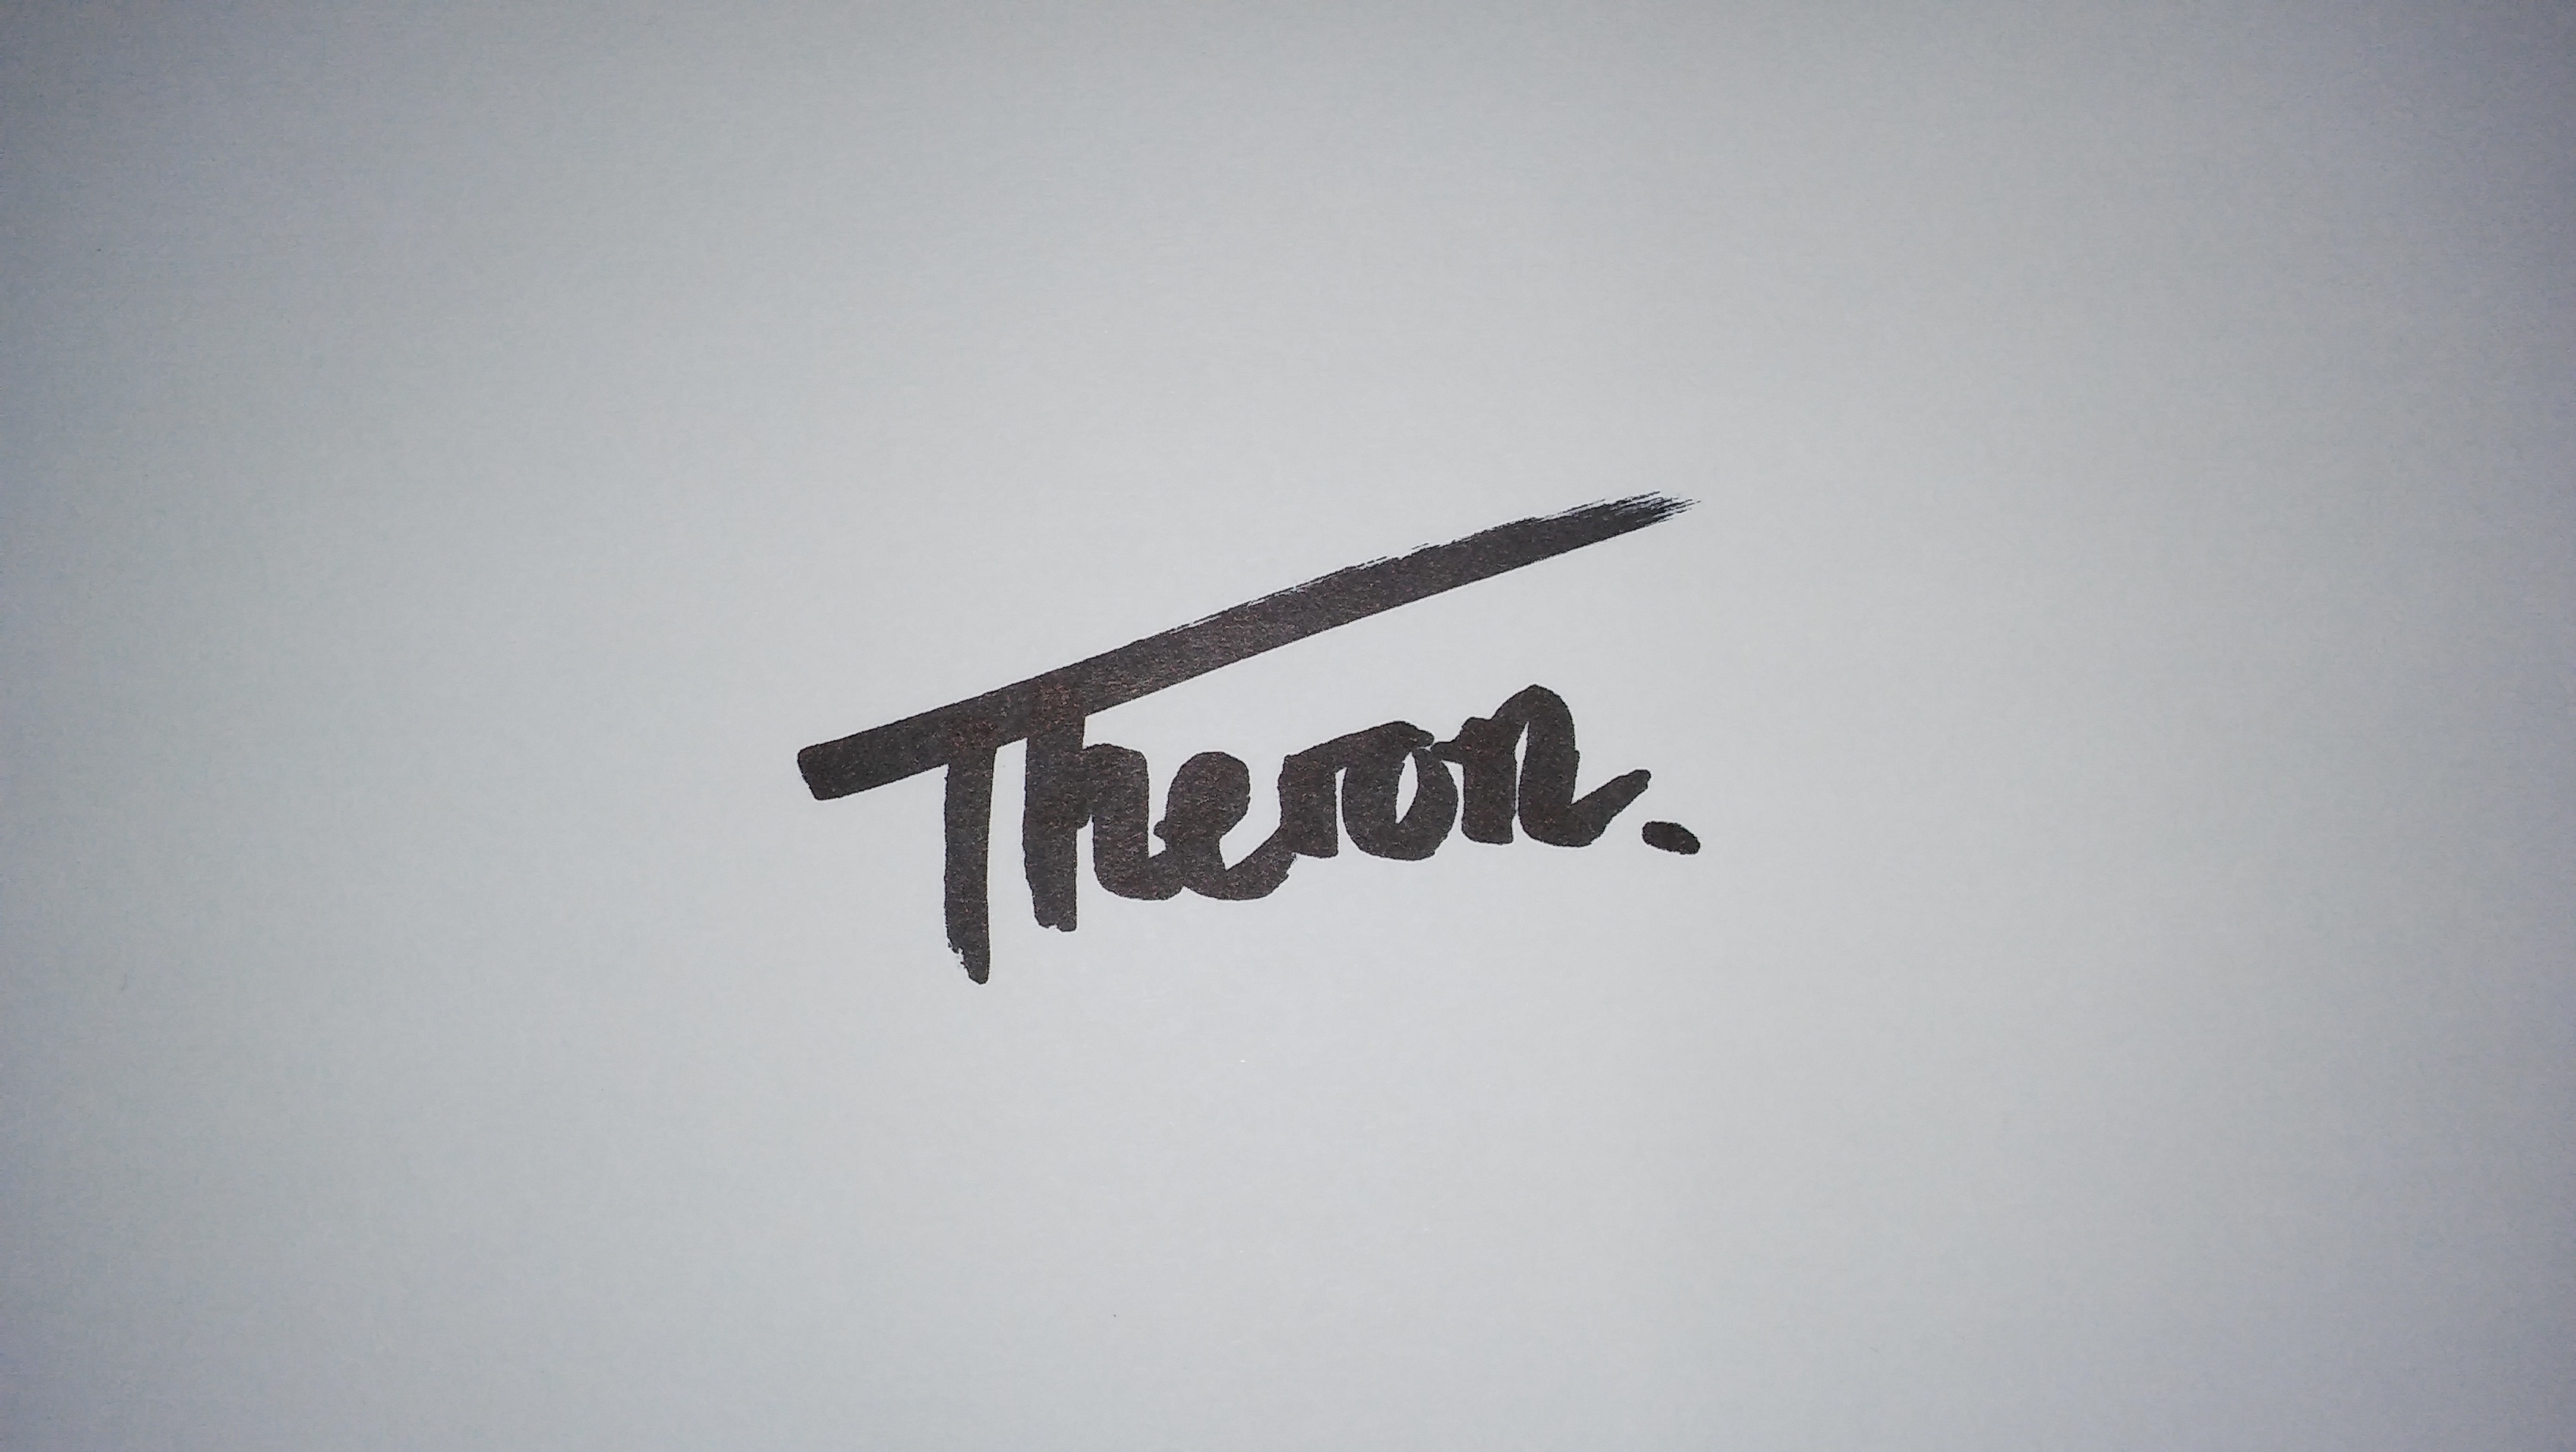 hendrik theron's Signature